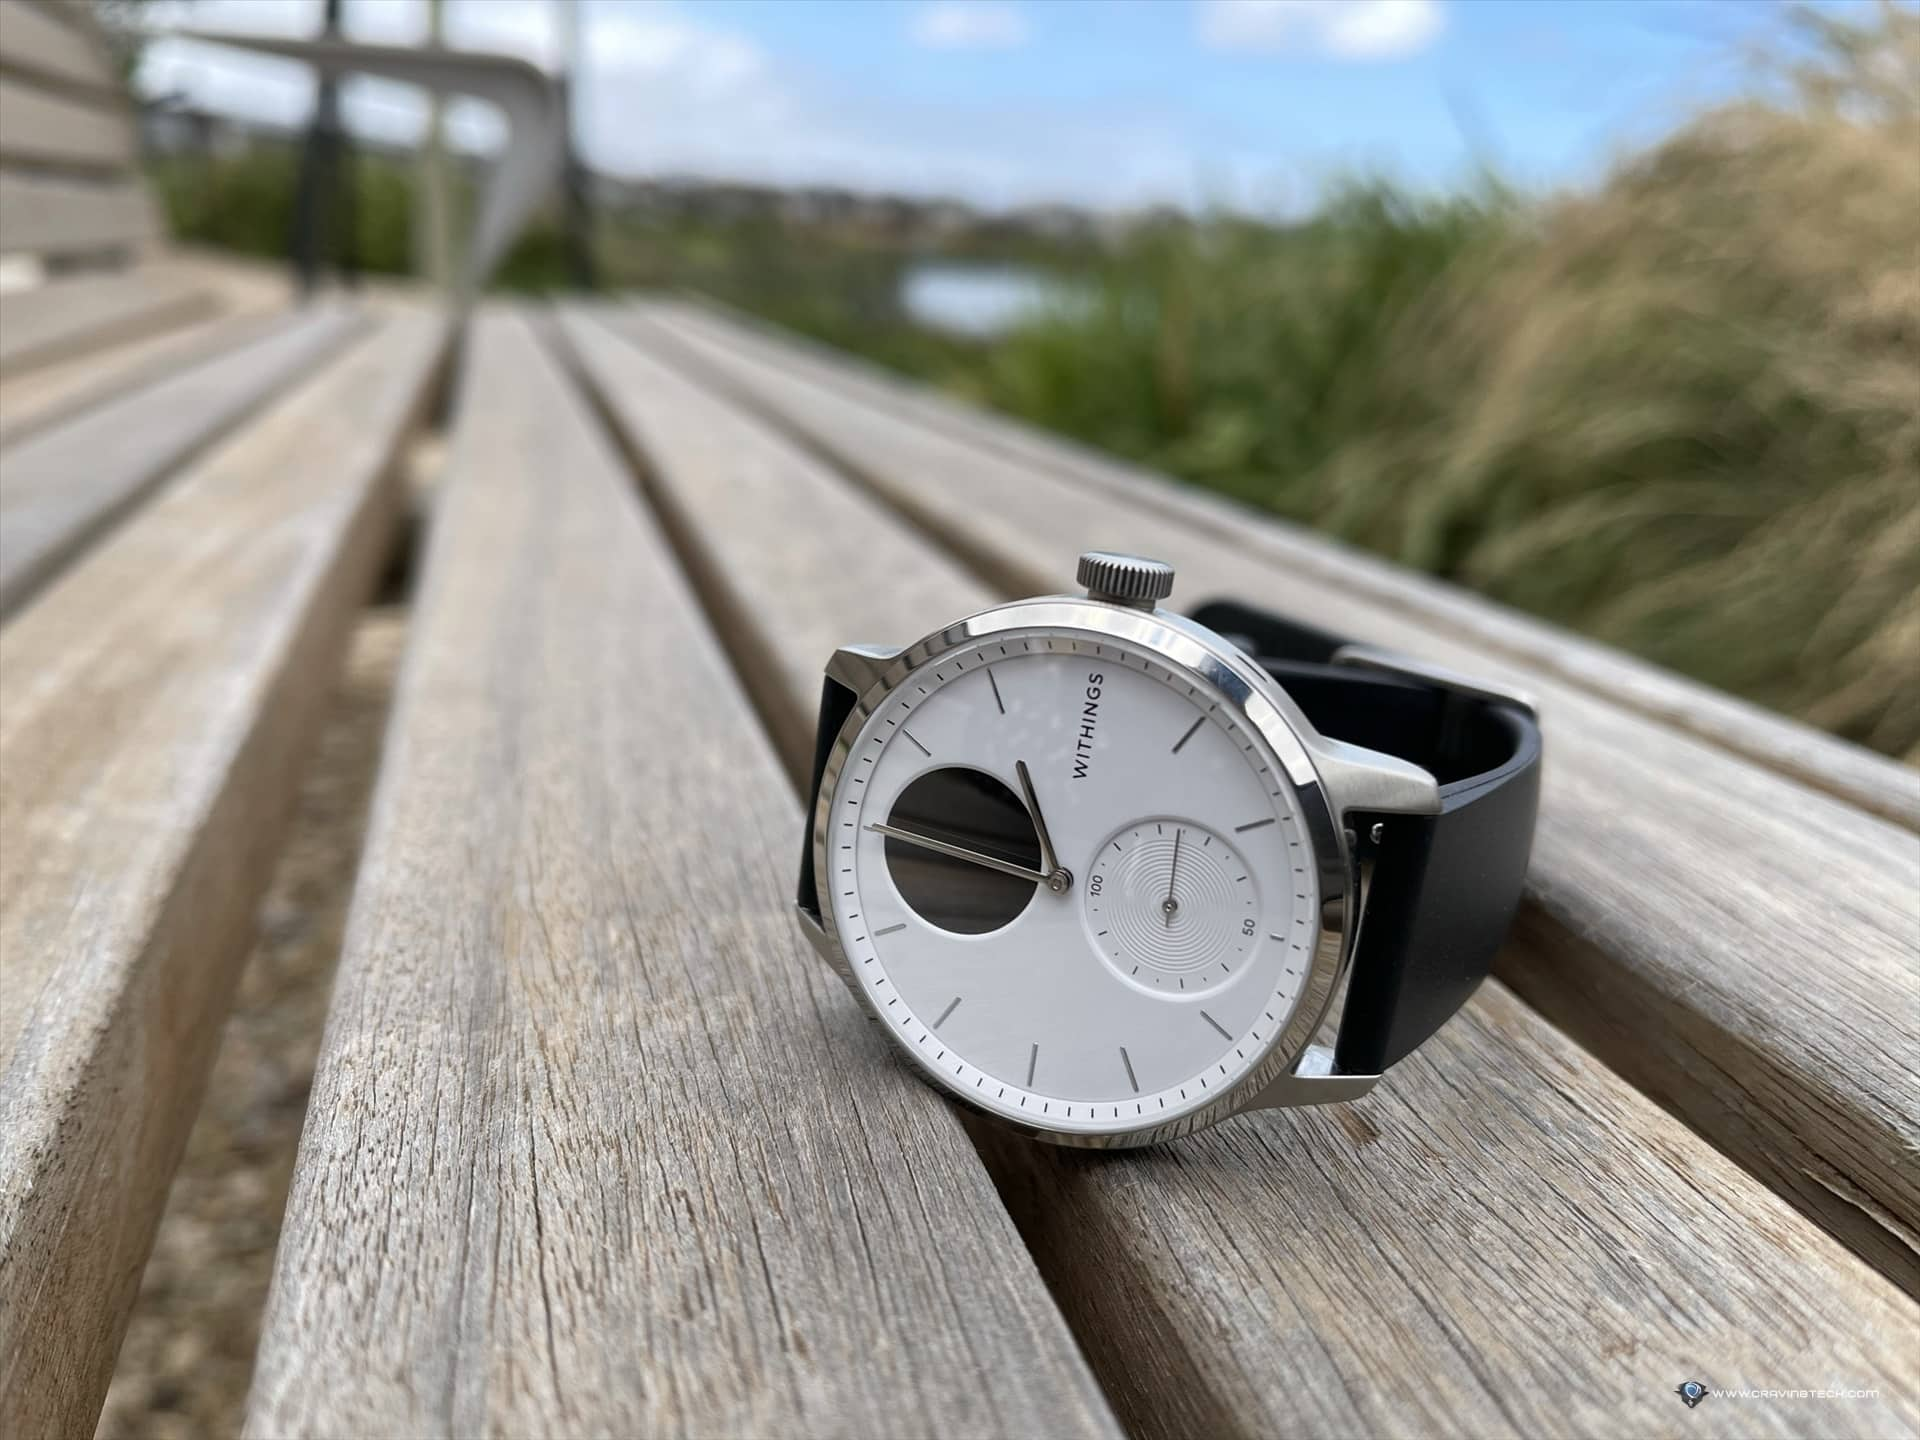 The first hybrid Smartwatch with ECG, heart rate & oximeter through Sp02 – Withings ScanWatch Review